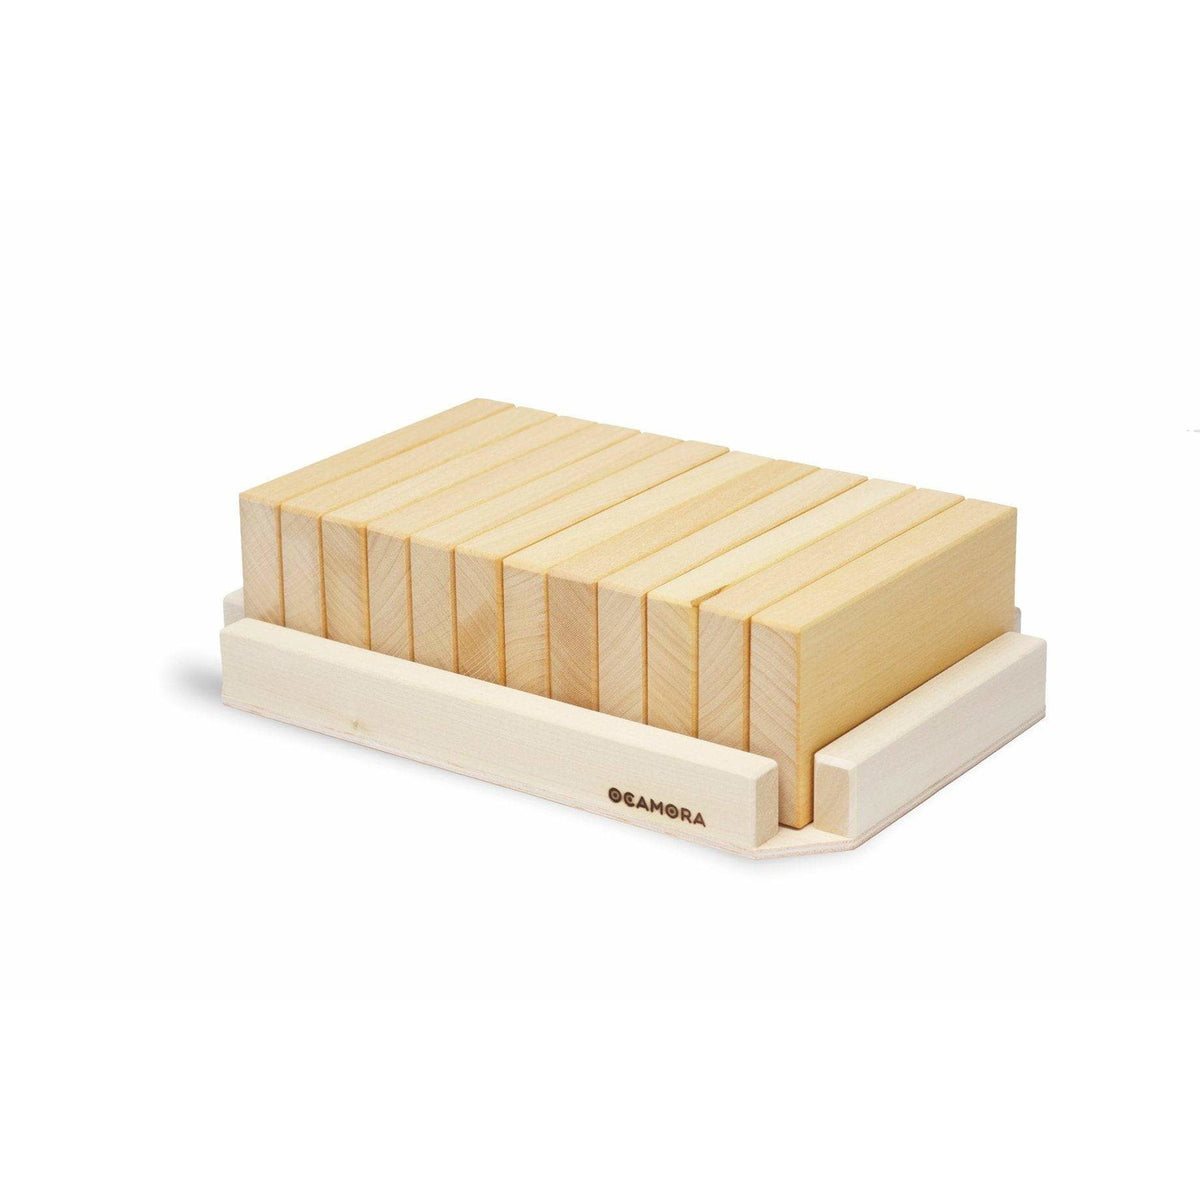 Ocamora Small Wooden Boards: Natural